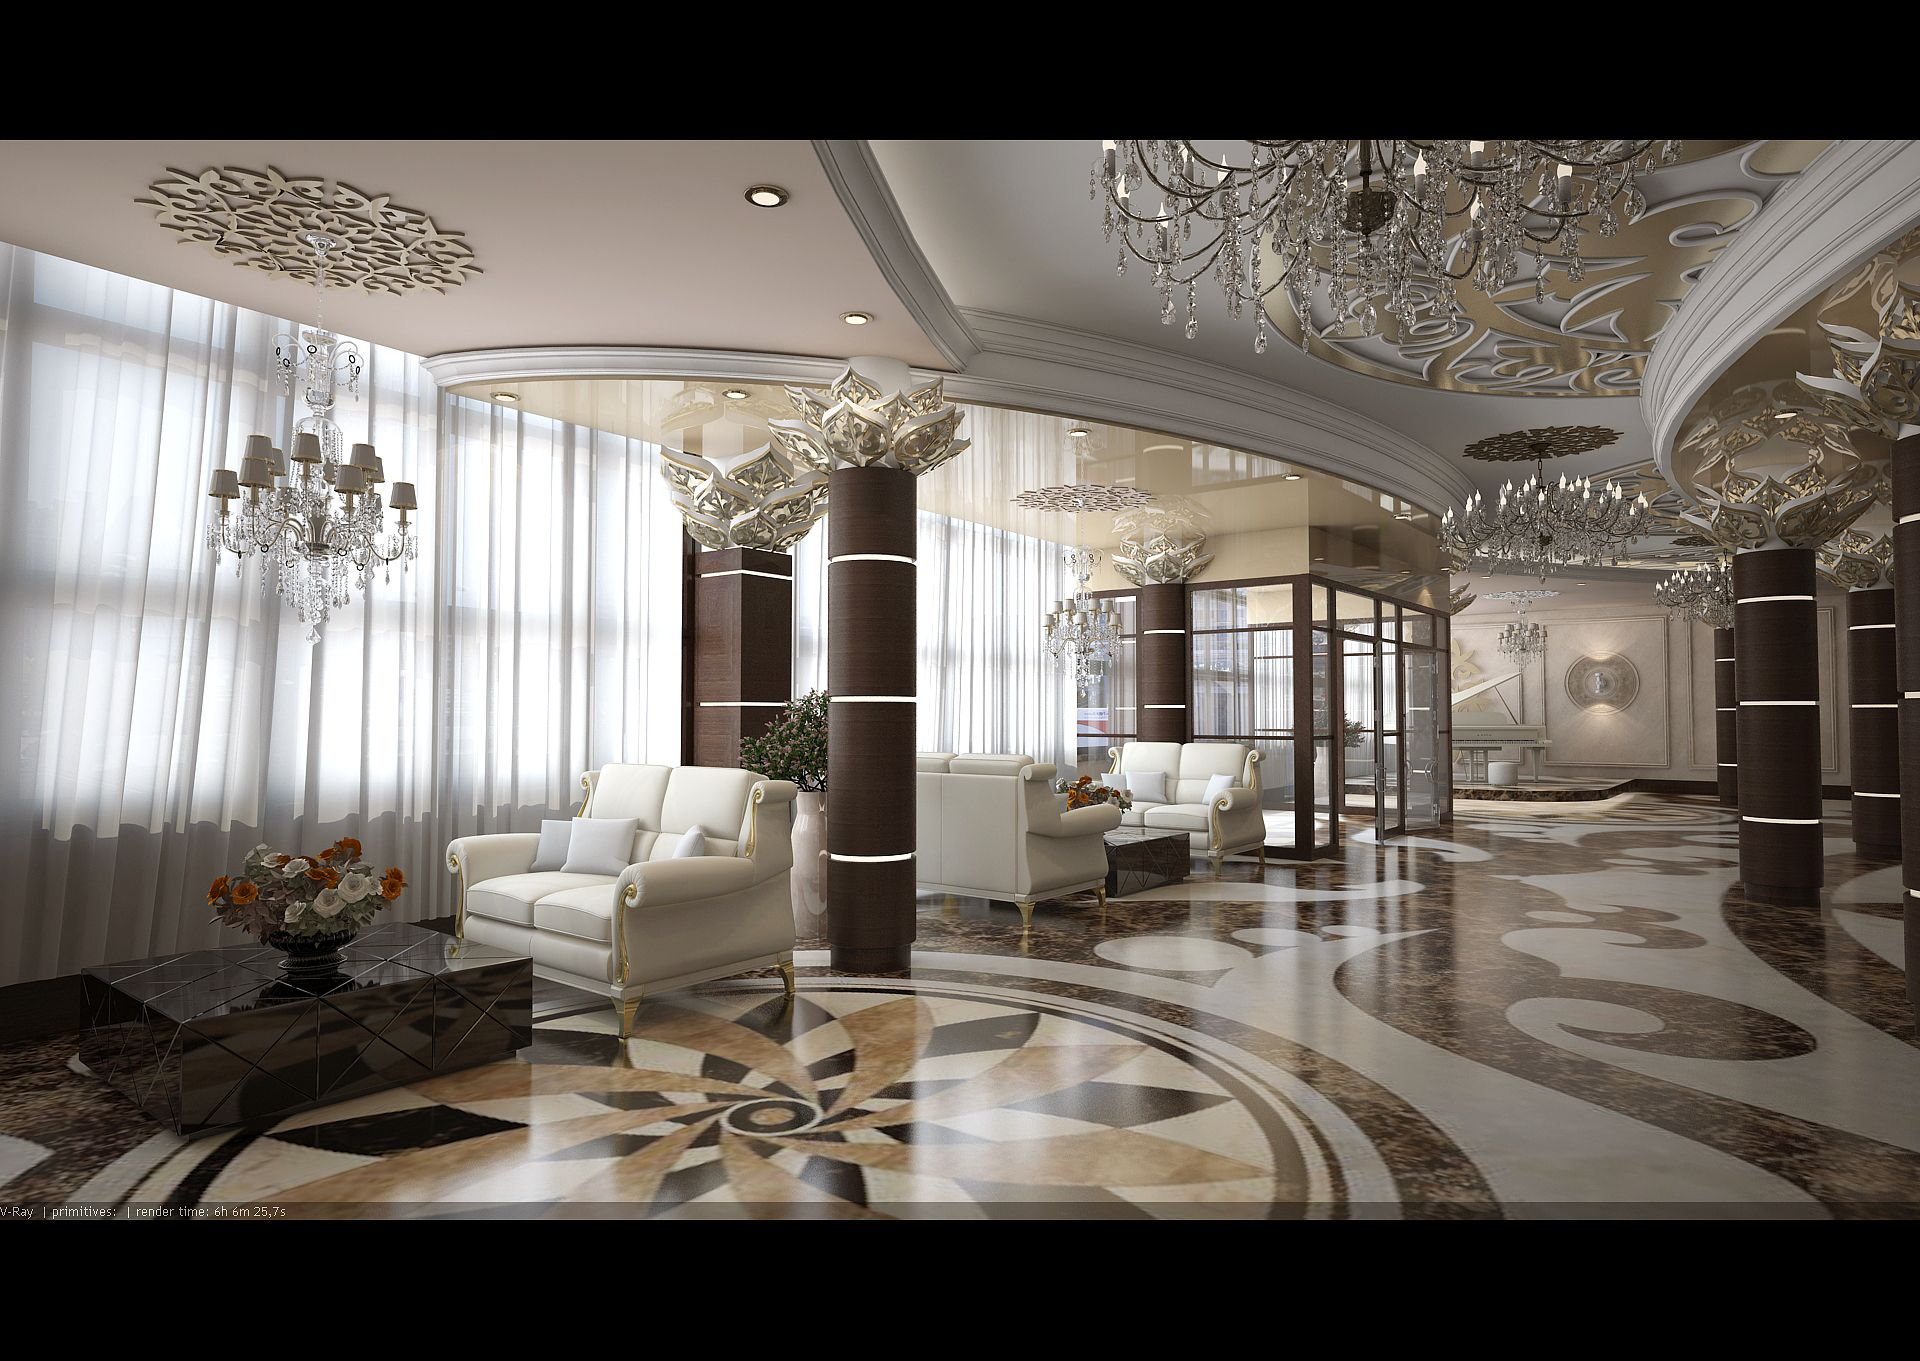 3D sketches of facades and interiors